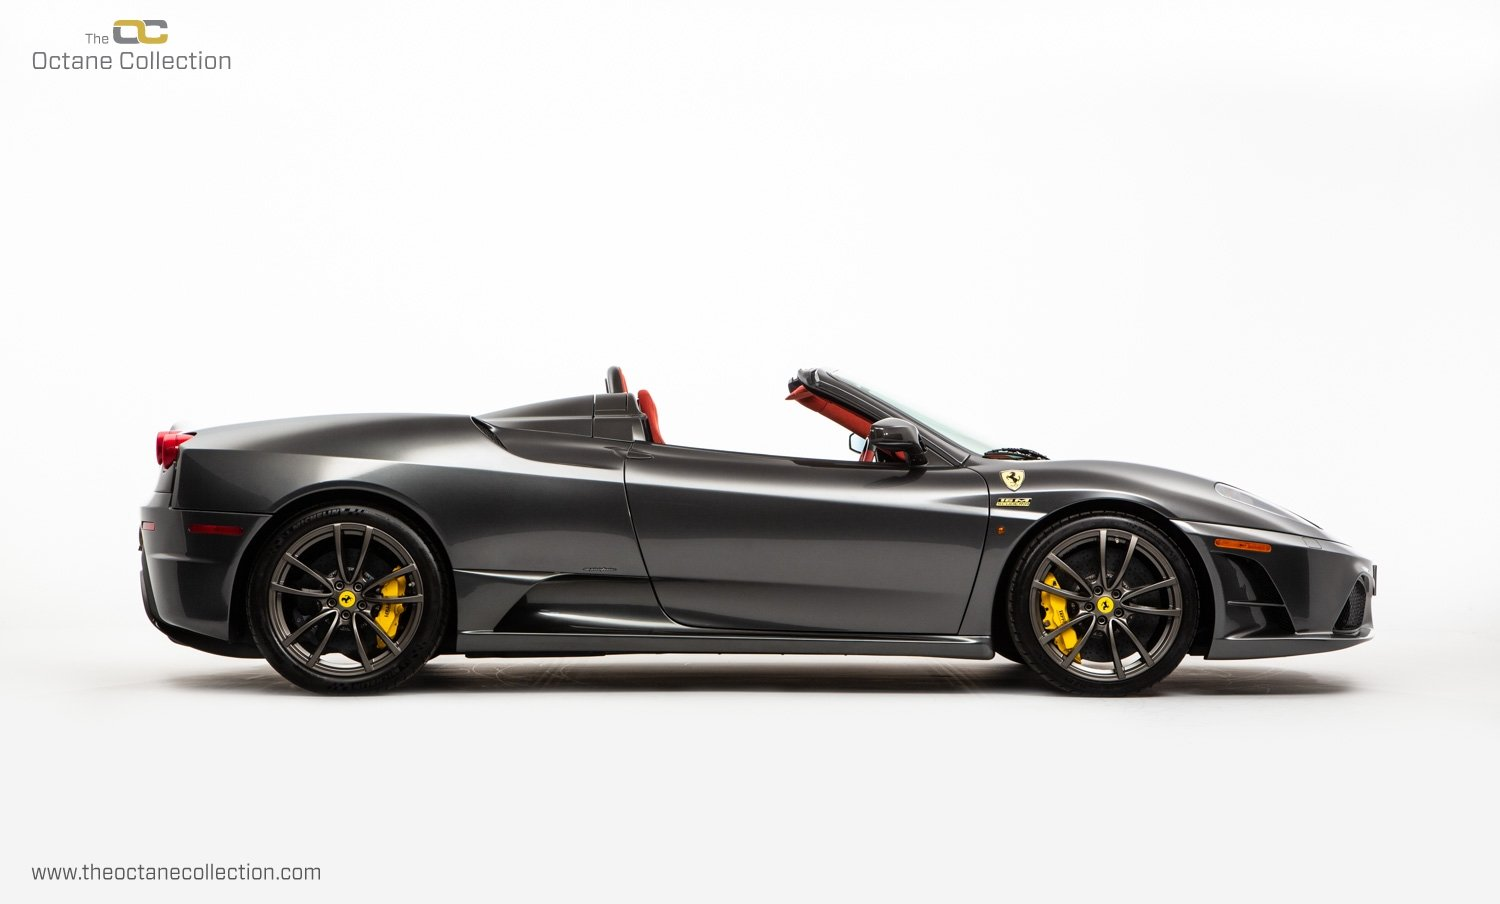 2009 FERRARI 16M SCUDERIA // GRIGIO SILVERSTONE // CARBON FIBRE P For Sale (picture 7 of 20)